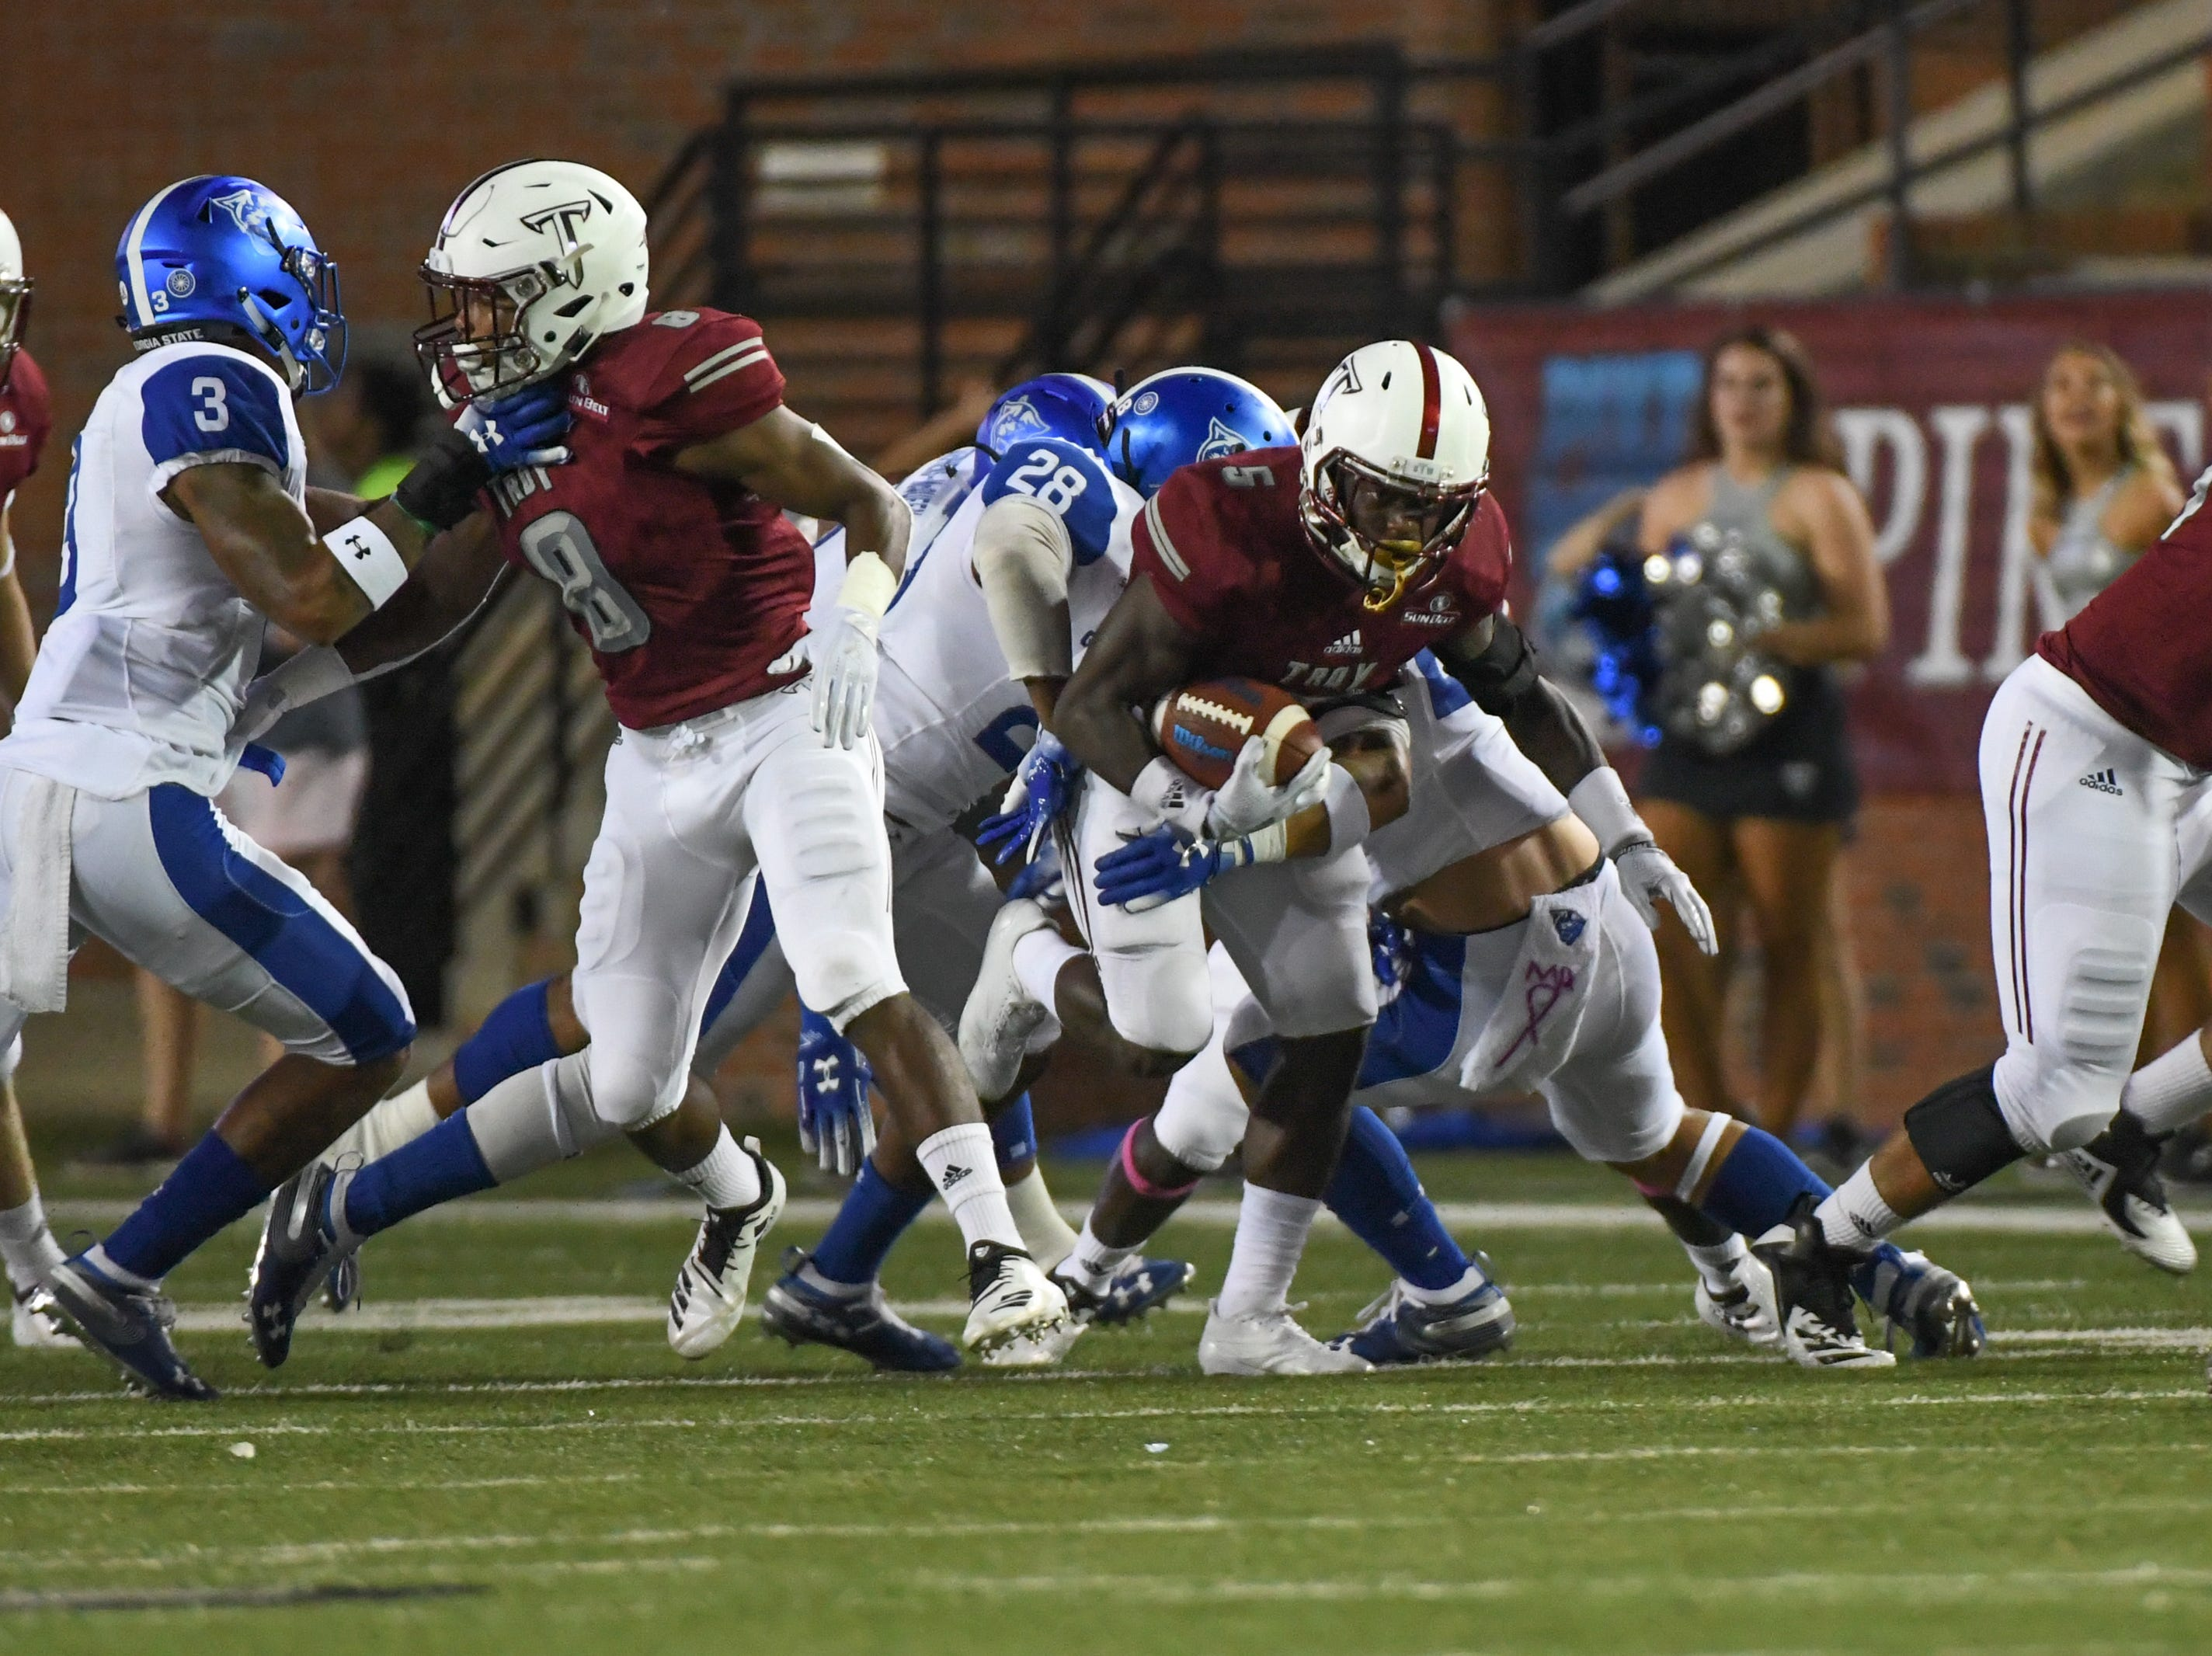 Troy Trojans running back Jabir Daughtry-Frye (5) is tackled by Georgia State defense  at Veteran's Memorial Stadium in Troy, Ala., on Thursday, Oct. 4, 2018. (Chip Dillard/Special to the Montgomery Advertiser)